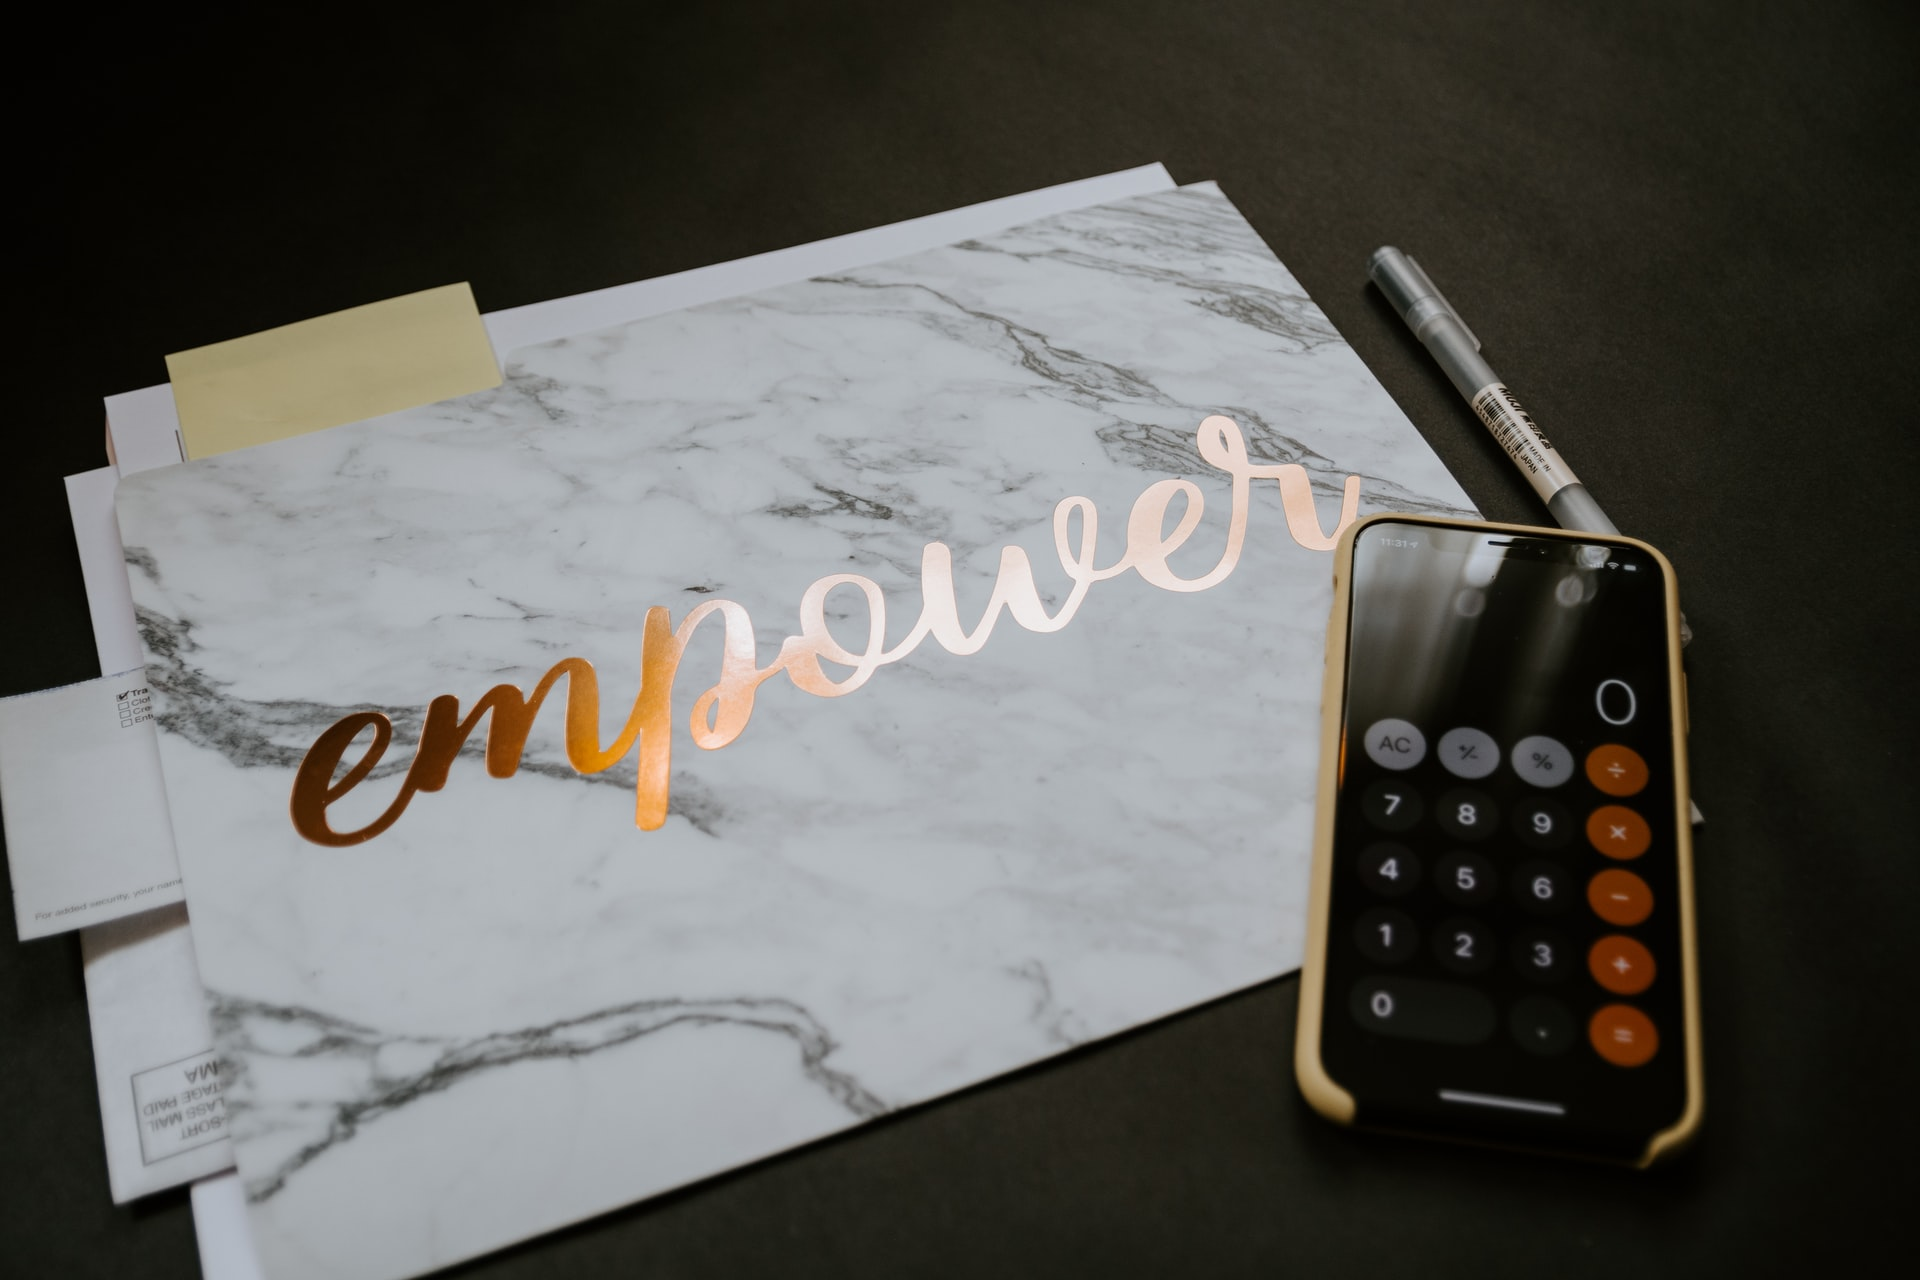 a calculator and a folder containing some documents; the folder has 'empower' printed on it | photo credit: Kelly Sikkema on Unsplash.com